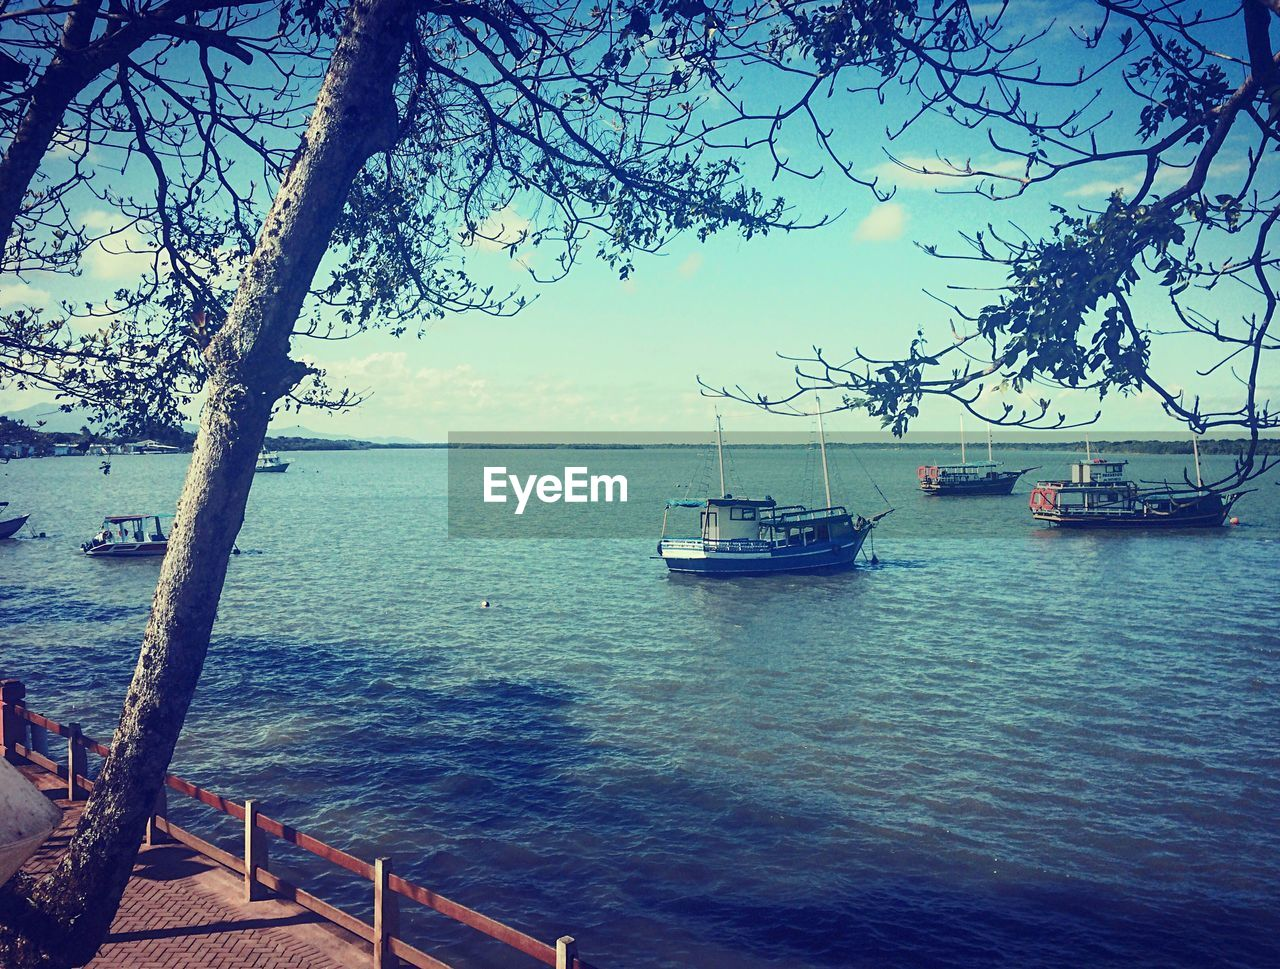 sea, water, nautical vessel, tree, beauty in nature, transportation, nature, mode of transport, scenics, tranquility, outdoors, tranquil scene, no people, sky, horizon over water, branch, day, moored